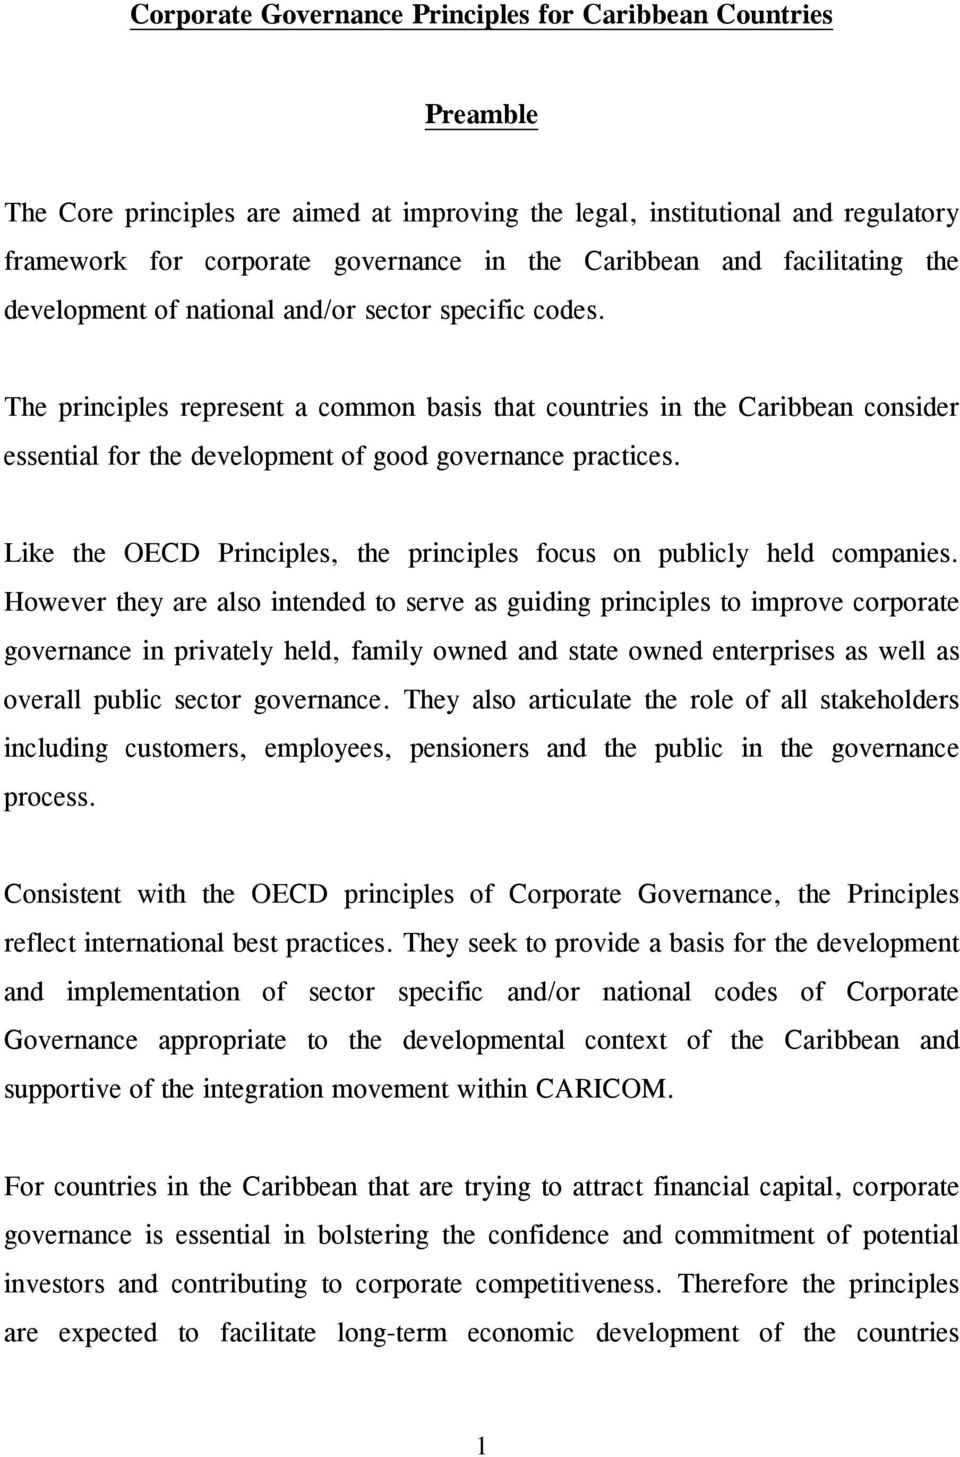 The principles represent a common basis that countries in the Caribbean consider essential for the development of good governance practices.